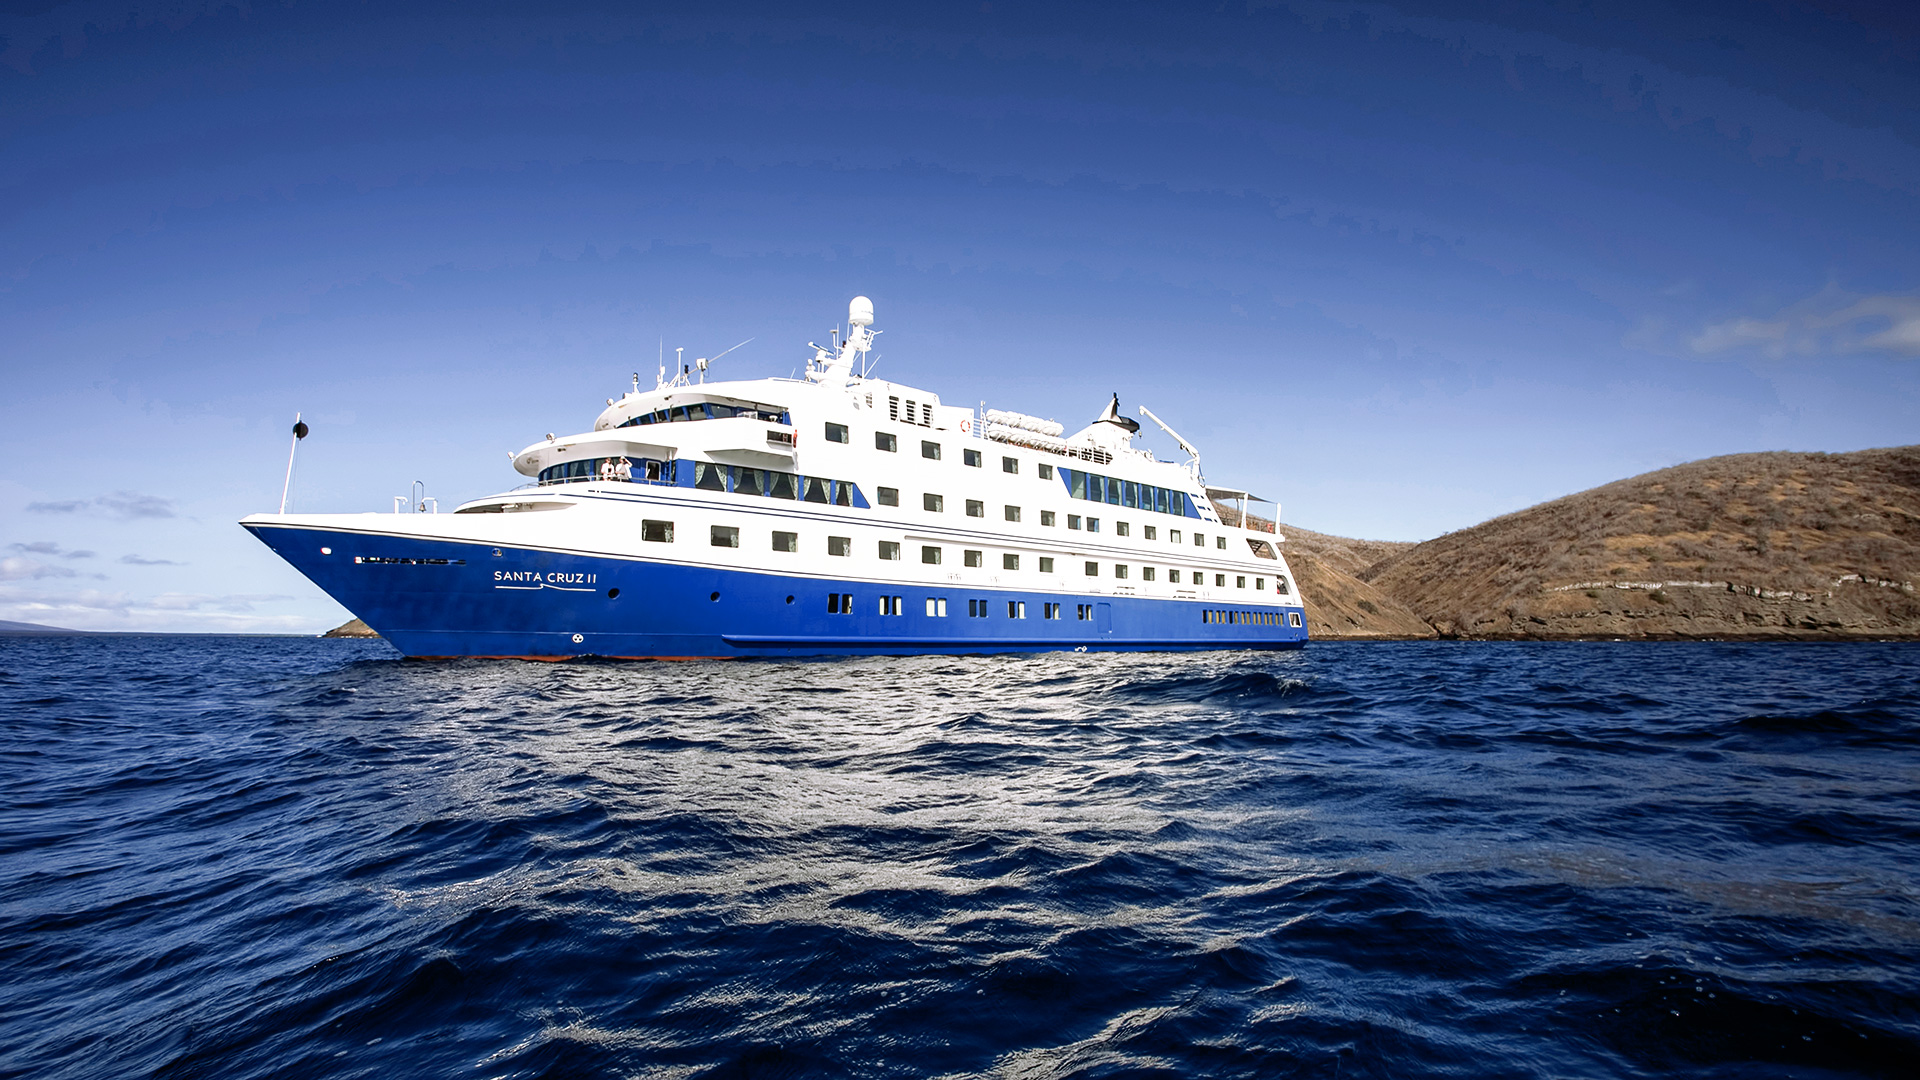 Galapagos luxury cruises, santa cruz galapagos, galapagos travel, eco tours galapagos islands, galapagos islands, galapagos guided tours, touring the galapagos, galapagos island tours price, galapagos islands land tours, galapagos local tours